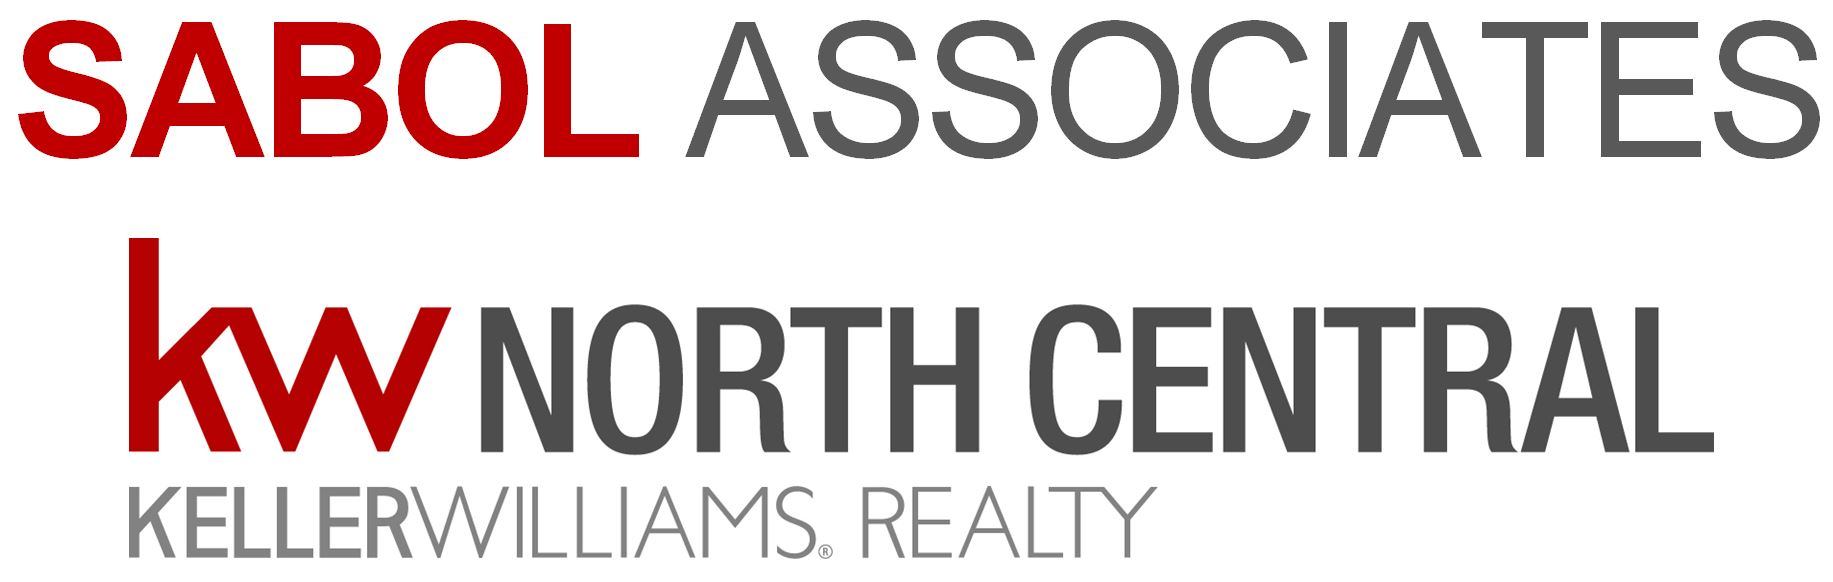 Sabol Associates of Keller Williams Realty North Central